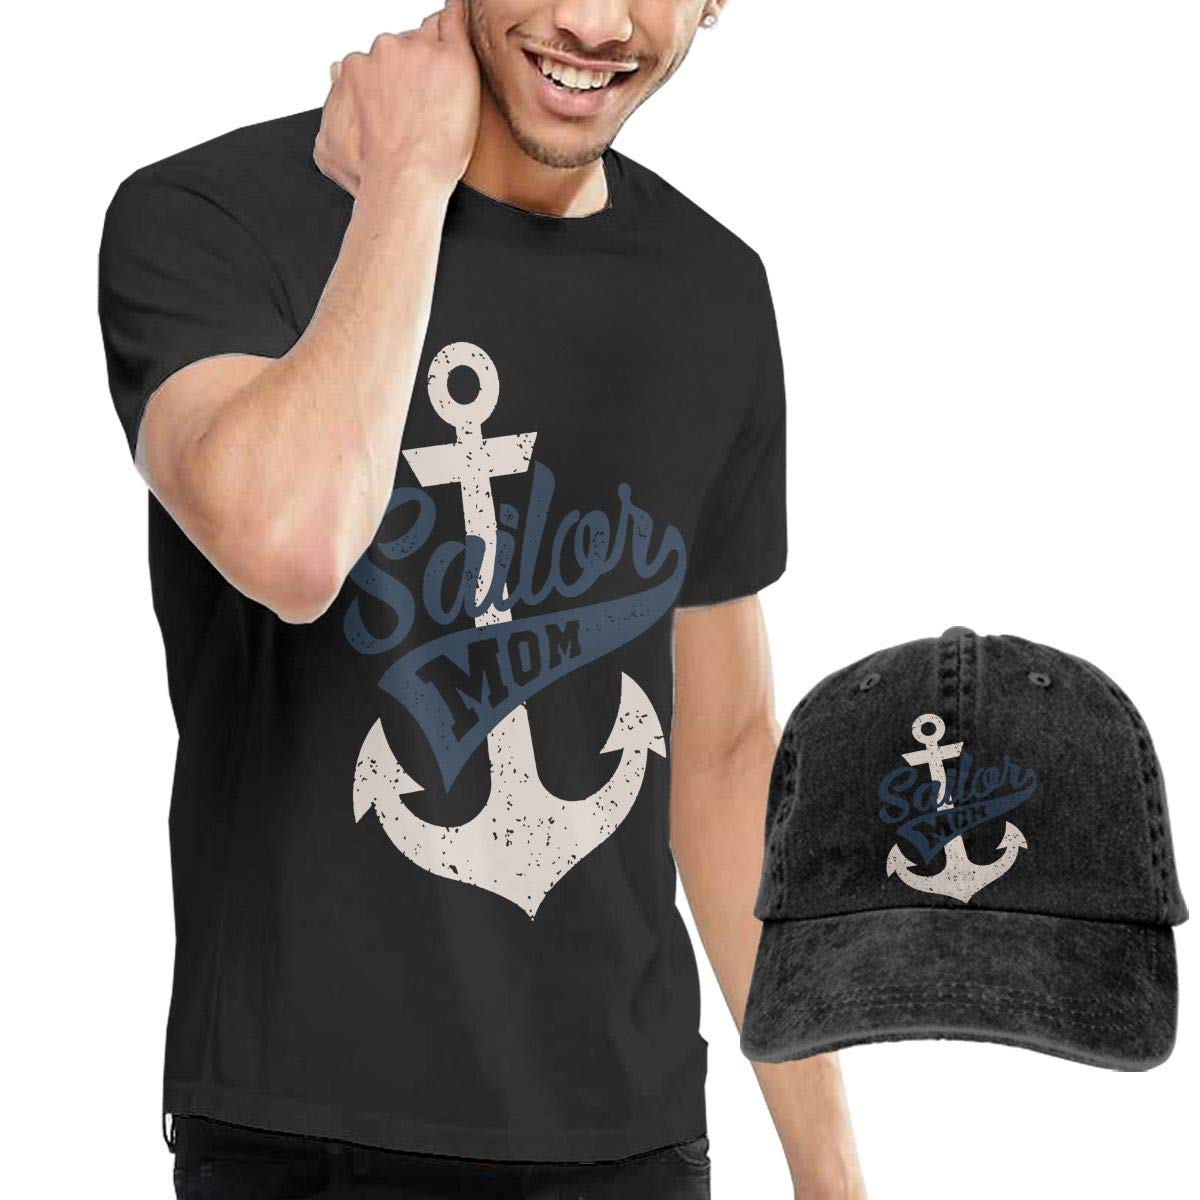 WWTBBJ-B Sailor Mom Adult Mens Summertime T-Shirt and Sports Jean Hat